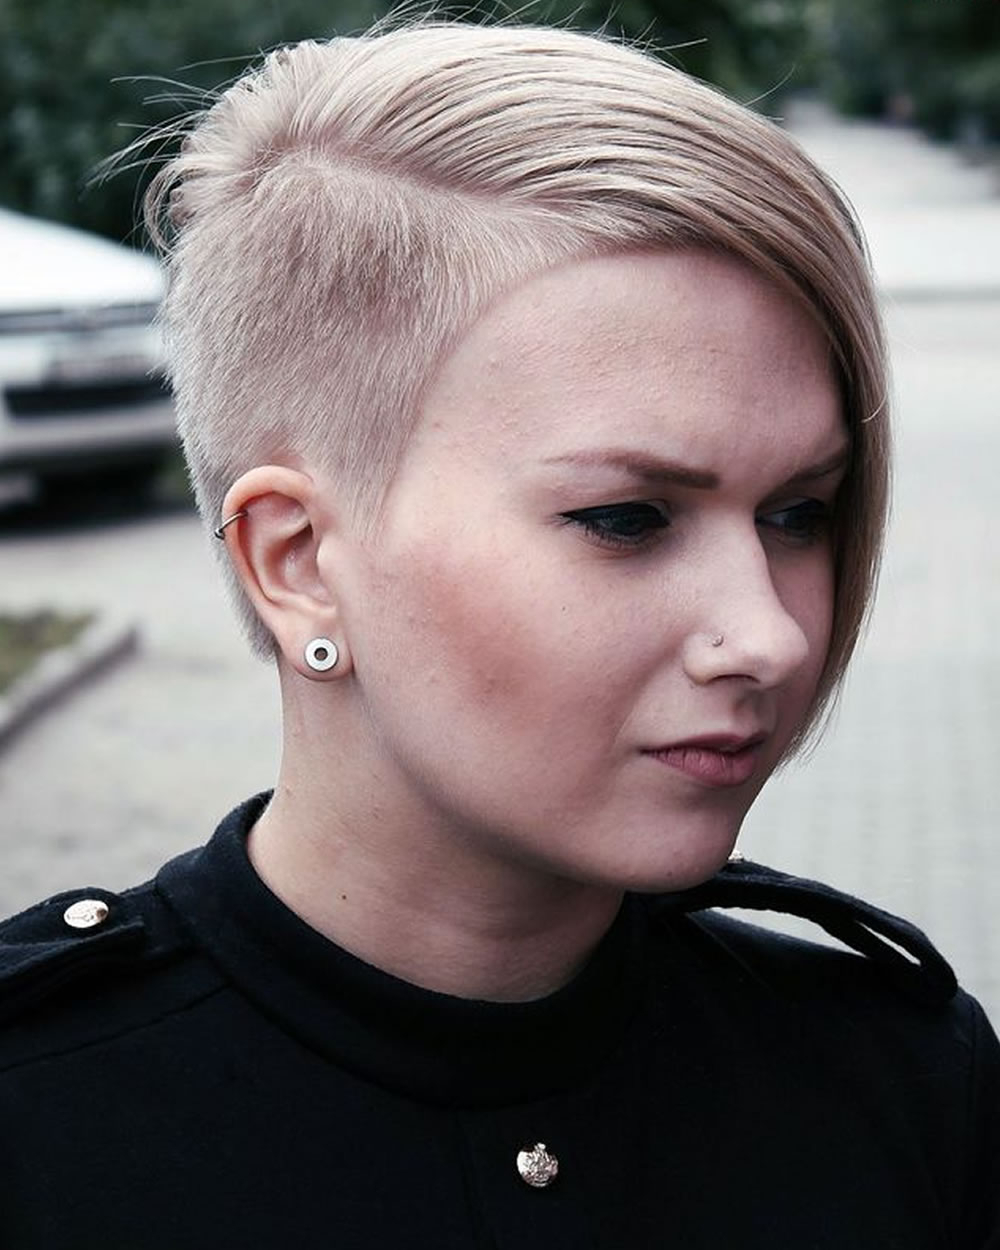 Feminine Extreme Short Haircuts For Ladies 2018 2019 – Hairstyles Inside Feminine Short Hairstyles For Women (View 6 of 25)